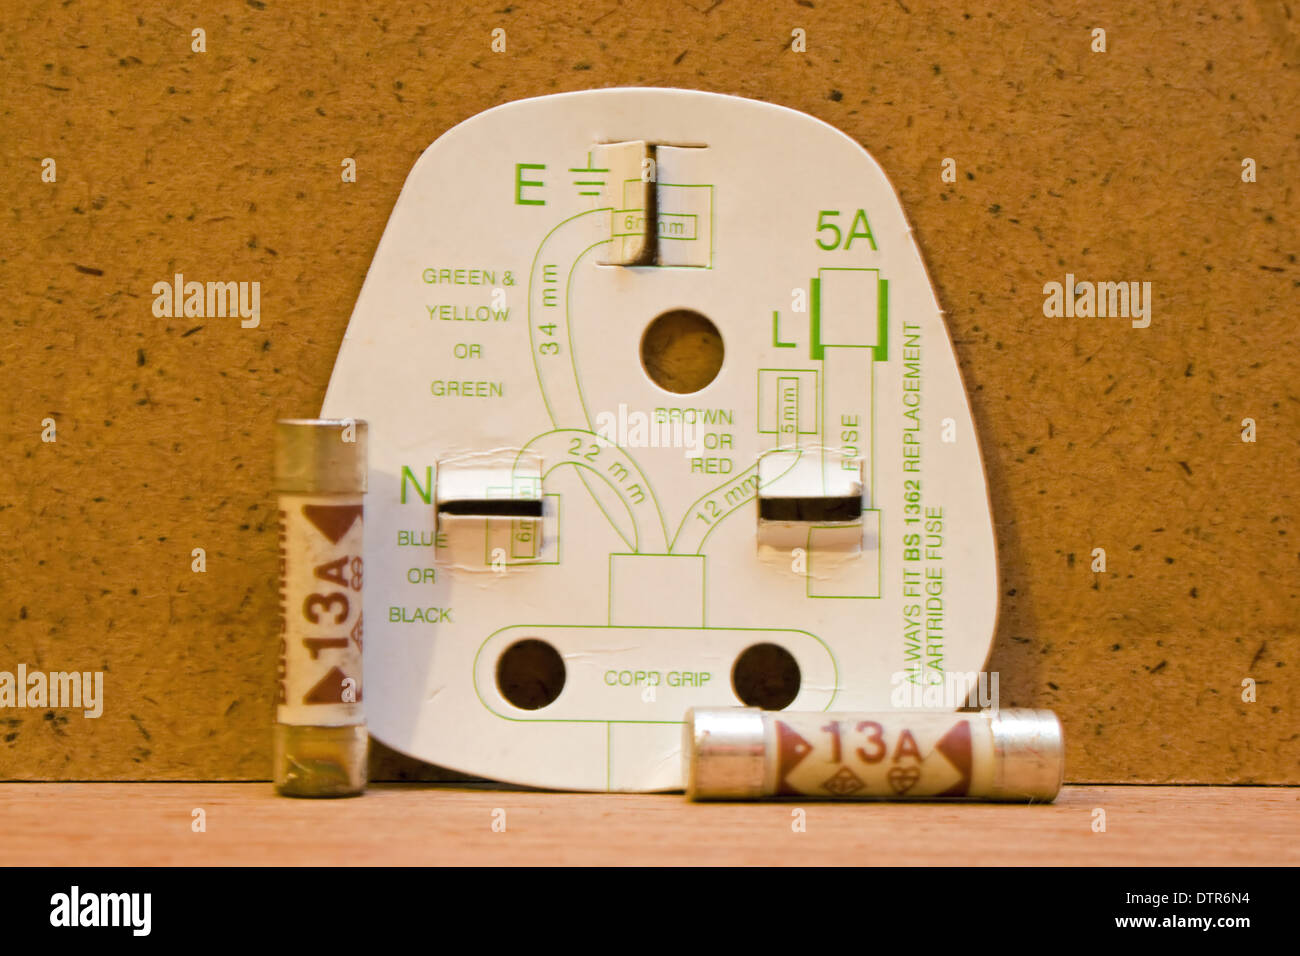 pin wiring diagram pin wiring diagram image wiring diagram pin uk three pin plug wiring diagram amp fuses stock photo stock photo uk three pin plug